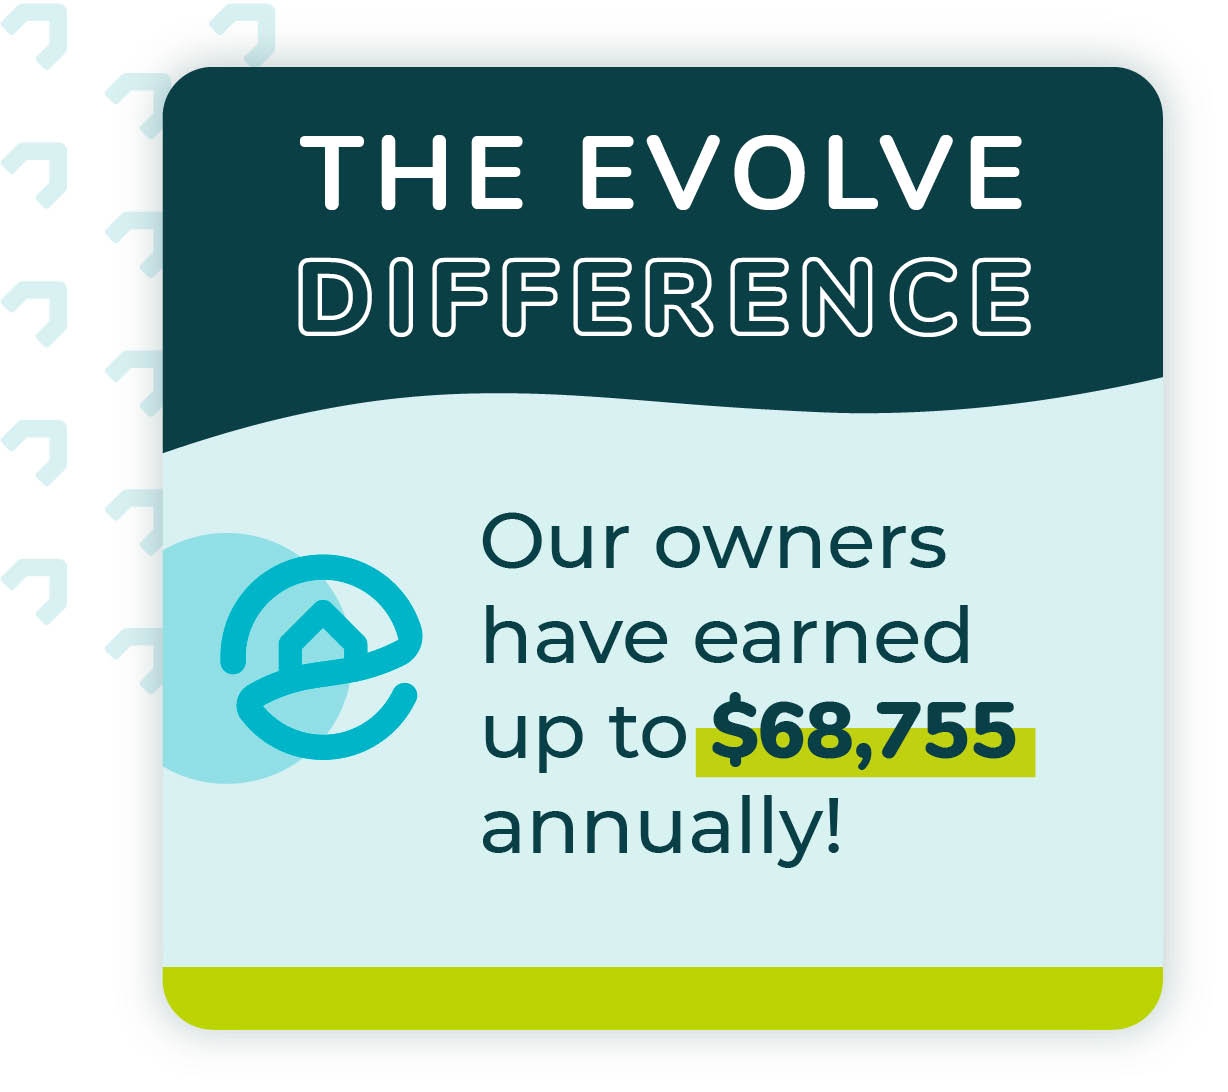 Surfside Beach,Texas Evolve Difference Graphic